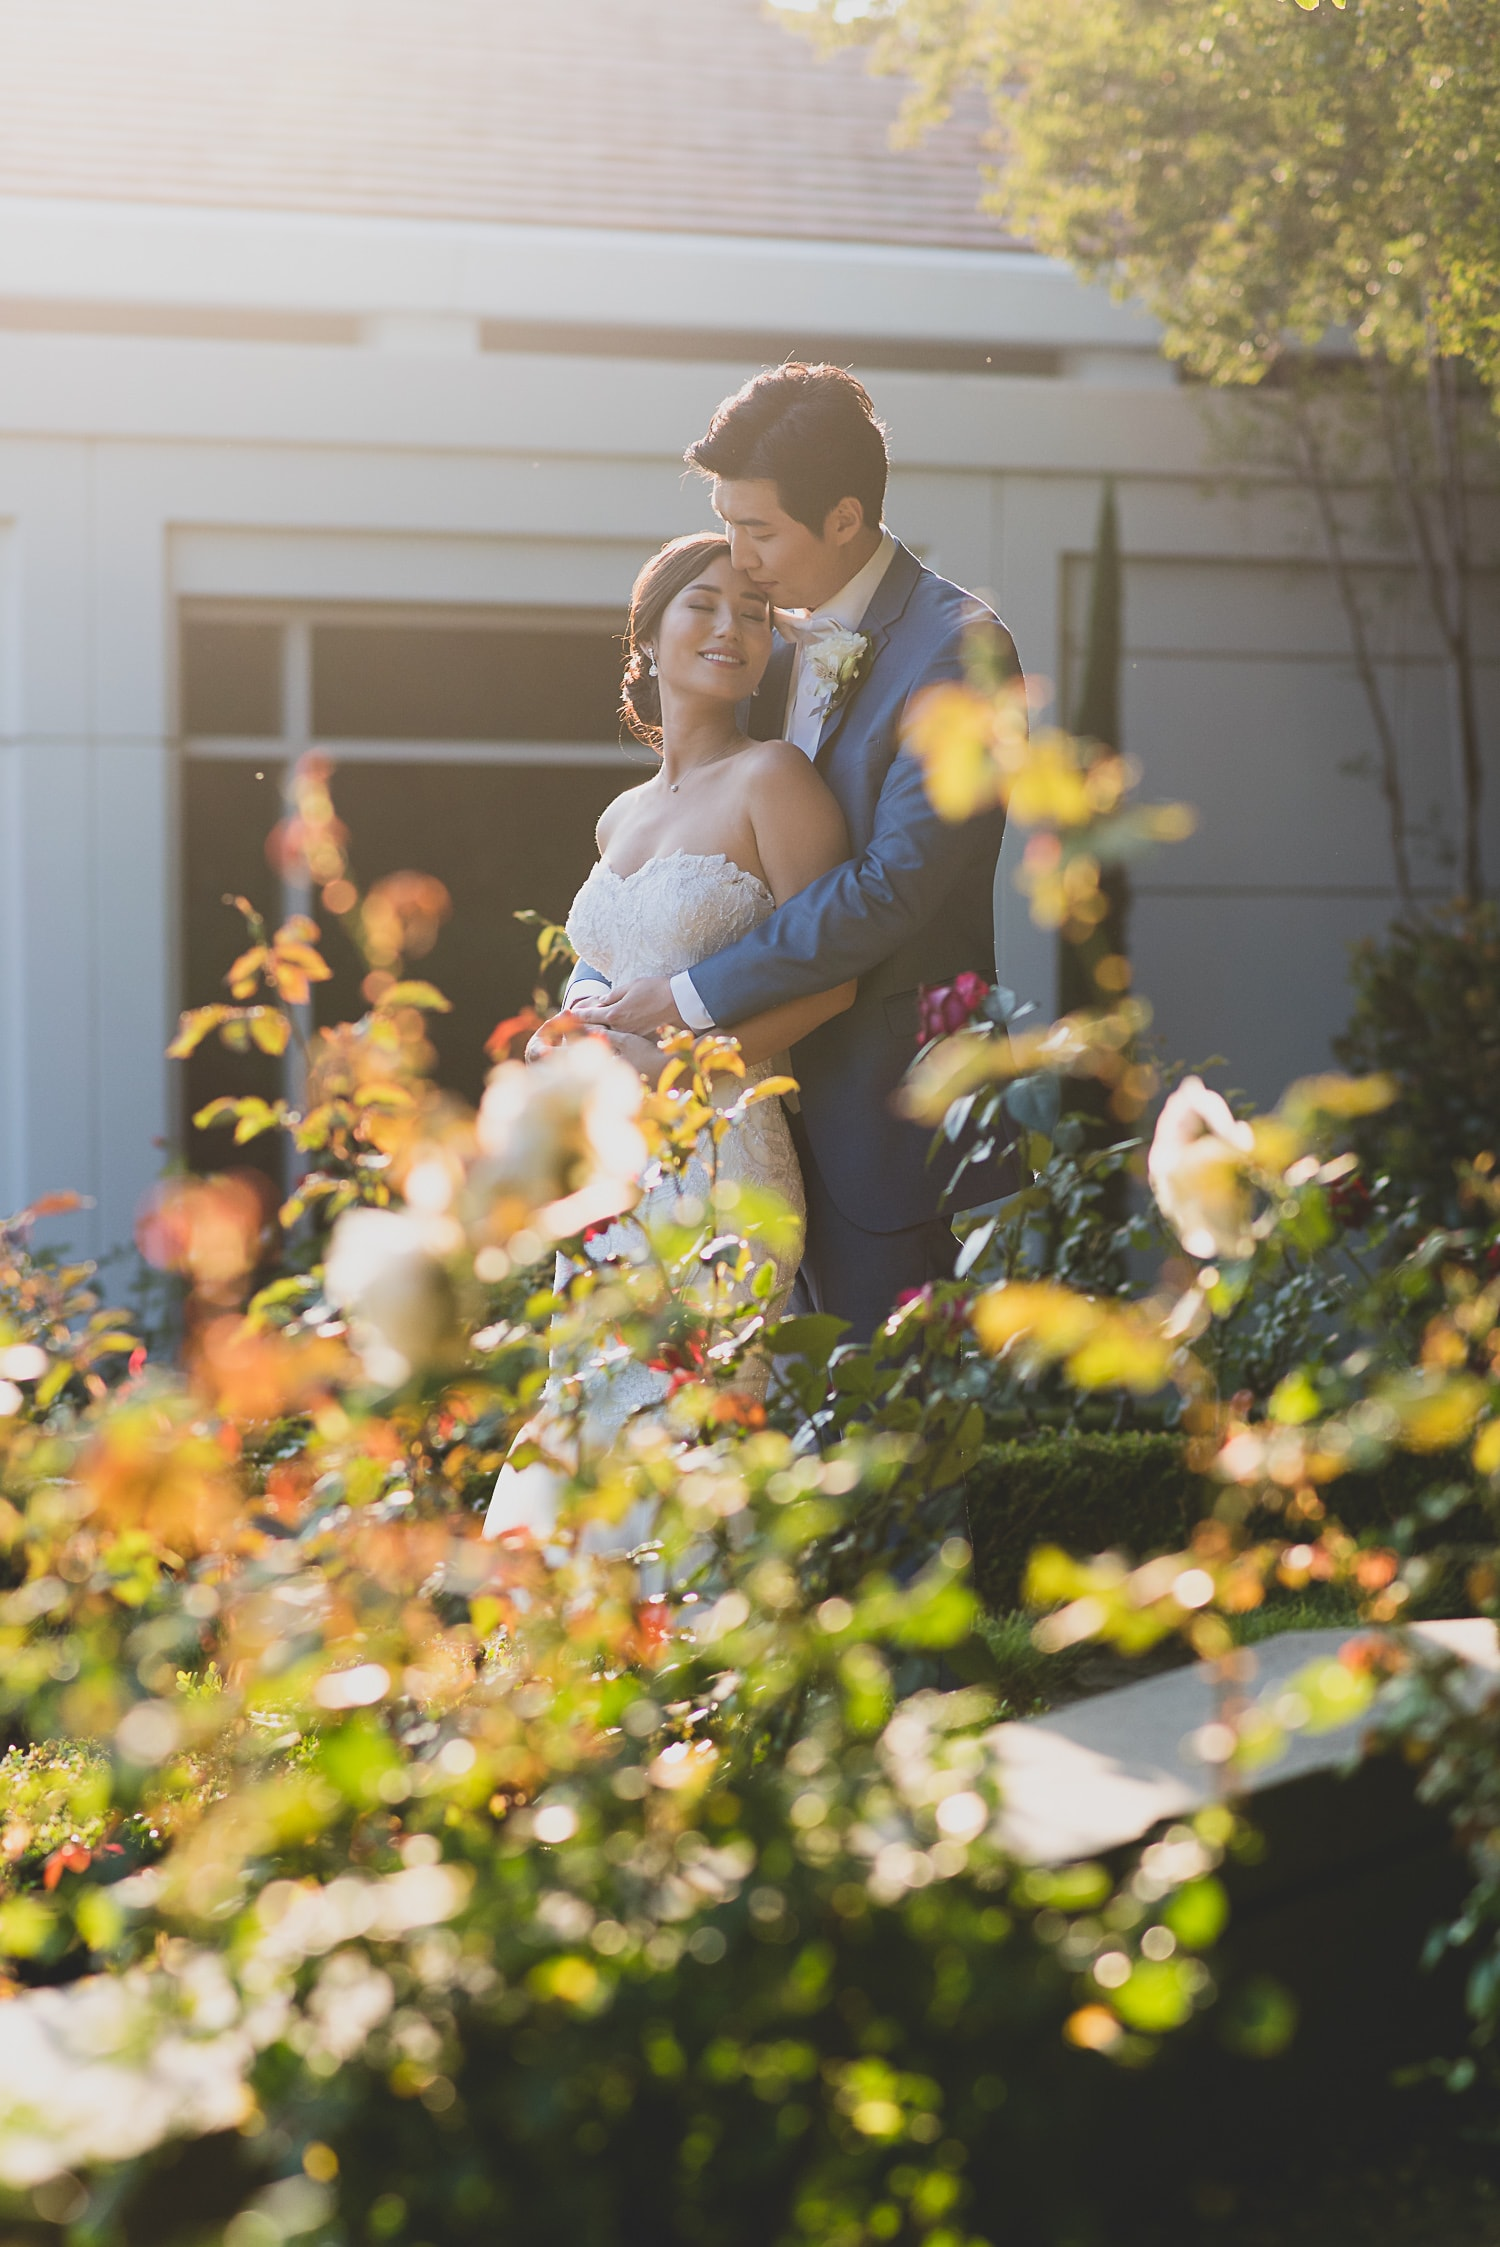 Last Minute Checklist: Things to Know Before Your Outdoor Wedding - A bride and groom enjoying their outdoor wedding.